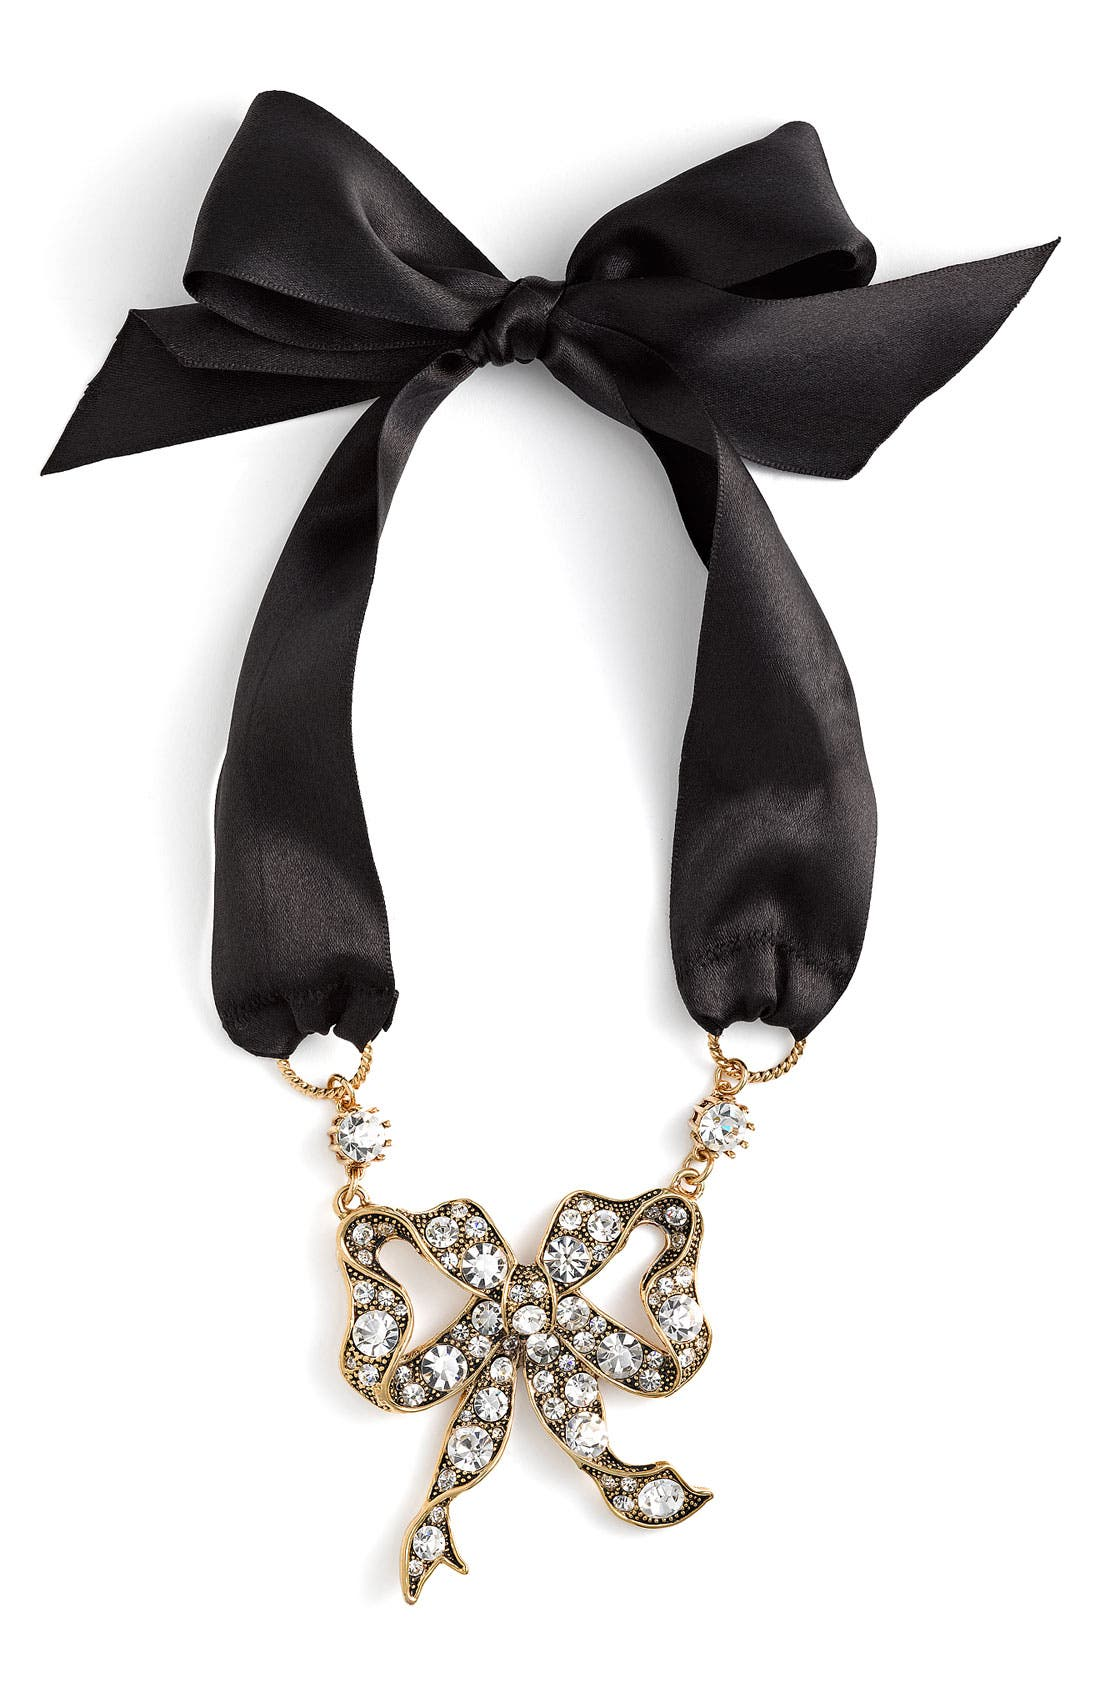 Alternate Image 1 Selected - Betsey Johnson 'Iconic' Bow & Satin Tie Necklace